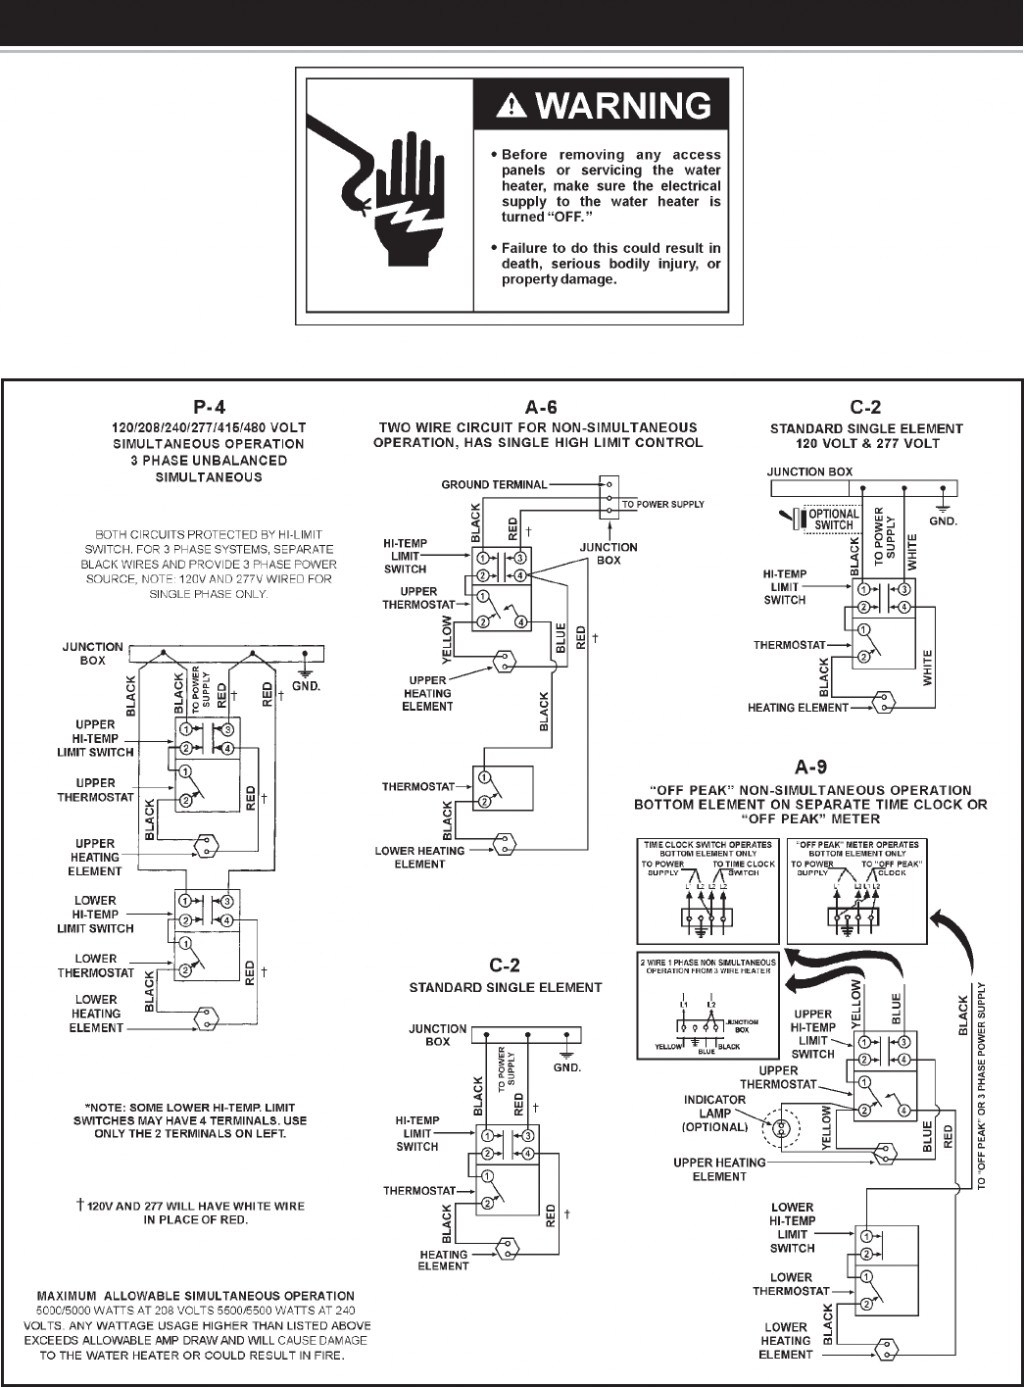 Century D1026 Wiring 220 Wiring Diagram | Wiring Diagram - A.o.smith Motors Wiring Diagram